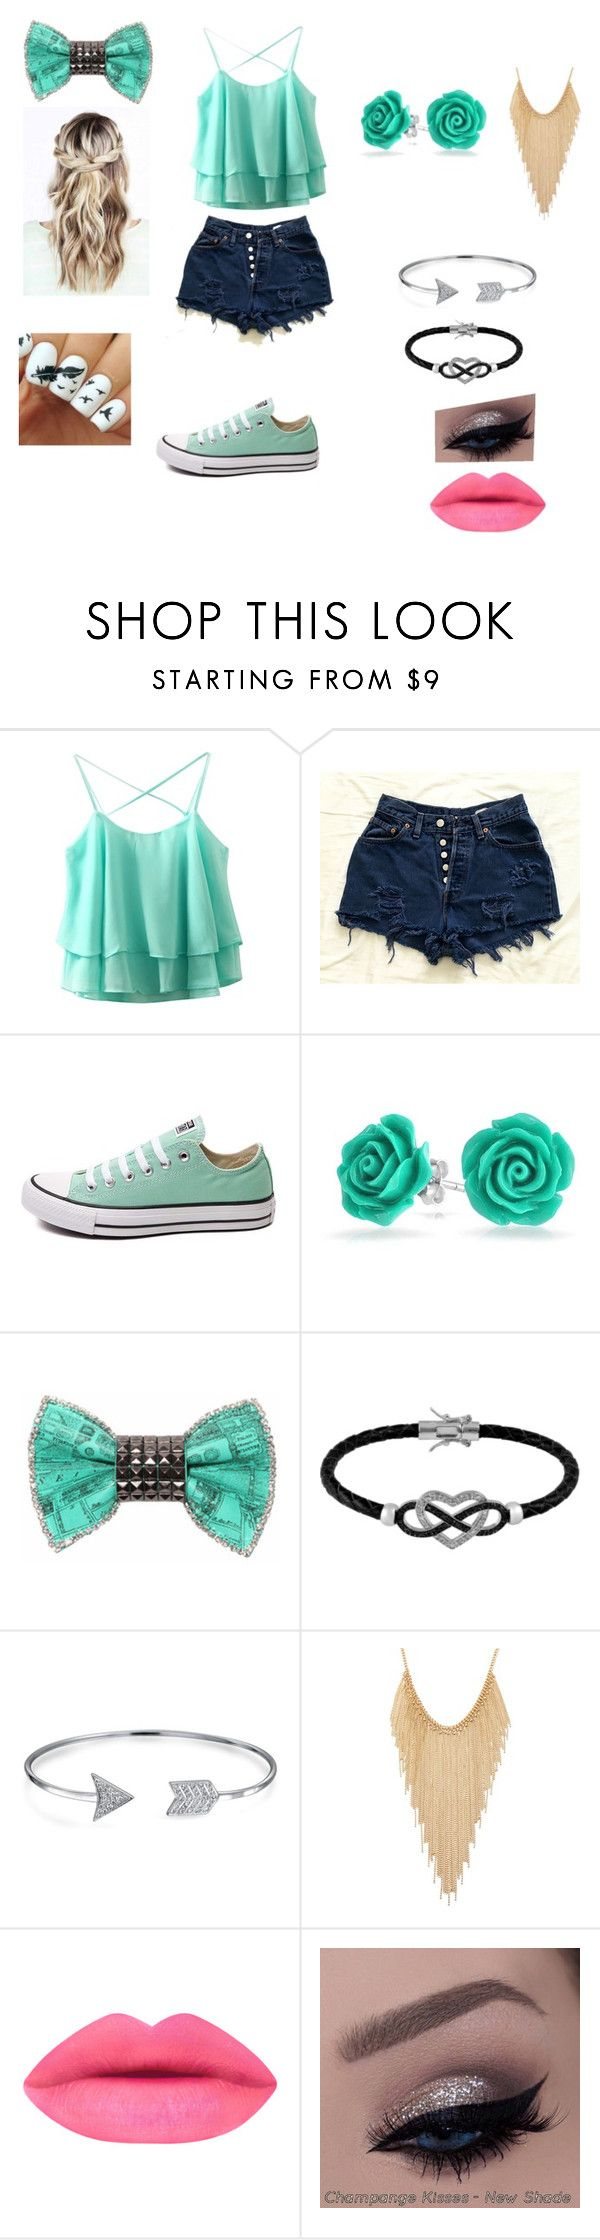 """Outfit #13"" by maddiebvb24 ❤ liked on Polyvore featuring Converse, Bling Jewelry, Bijoux de Famille, Jewel Exclusive and Forever 21"